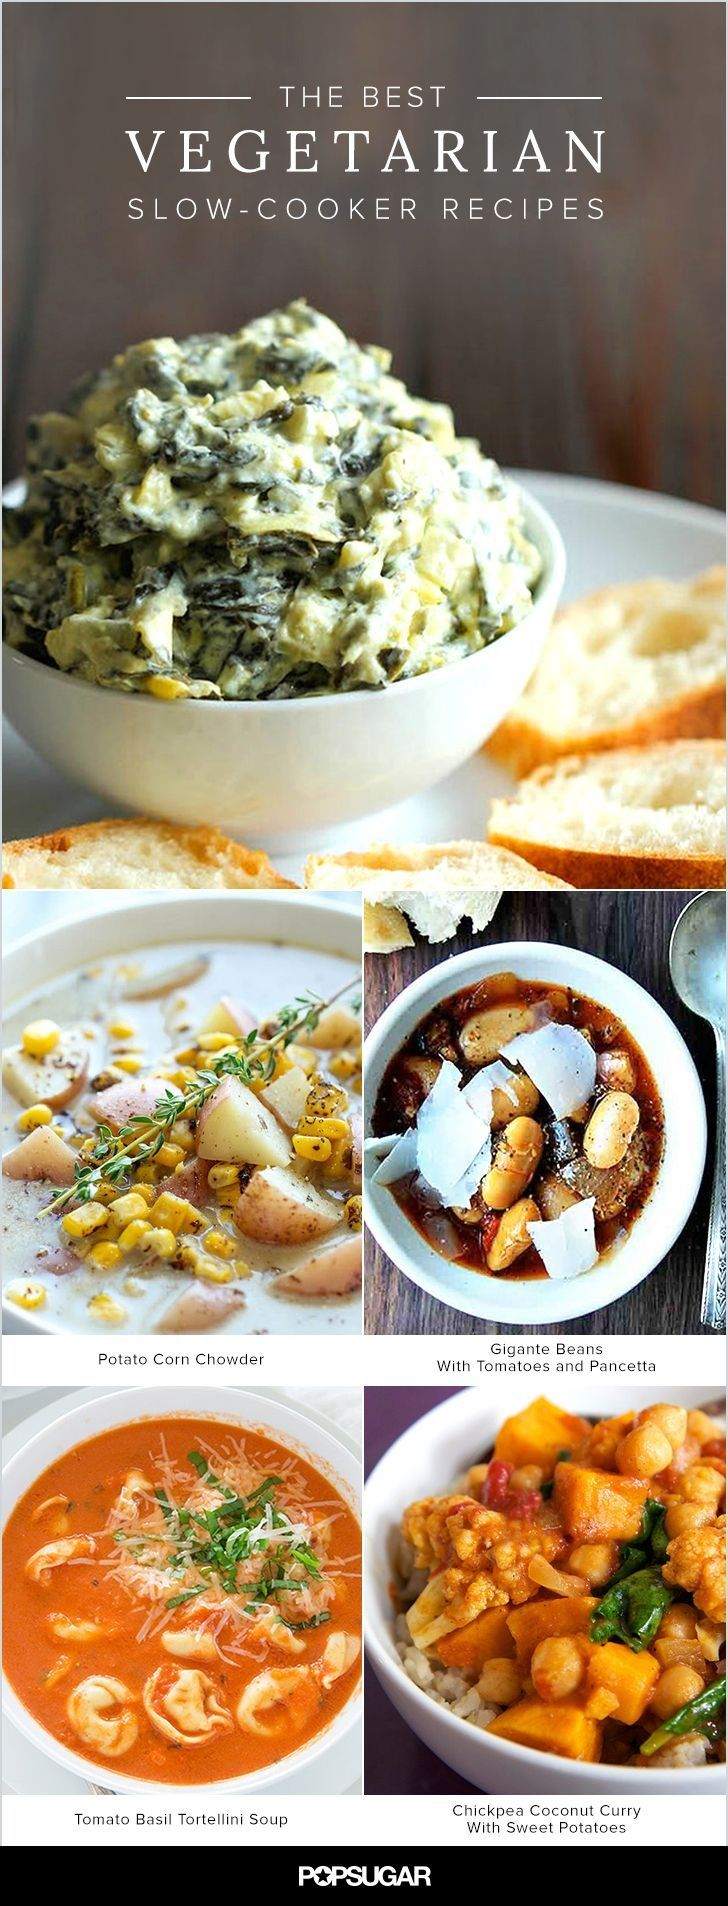 """There are plenty of killer vegetarian dishes that can be made the hands-off way, including chili, soups, """"roasted"""" potatoes, beans, and much more. Keep reading for 14 ideas. Do note that a few of the recipes included aren't strictly vegetarian; in those cases we've included a note on how to adapt the recipe for a vegetarian diet."""